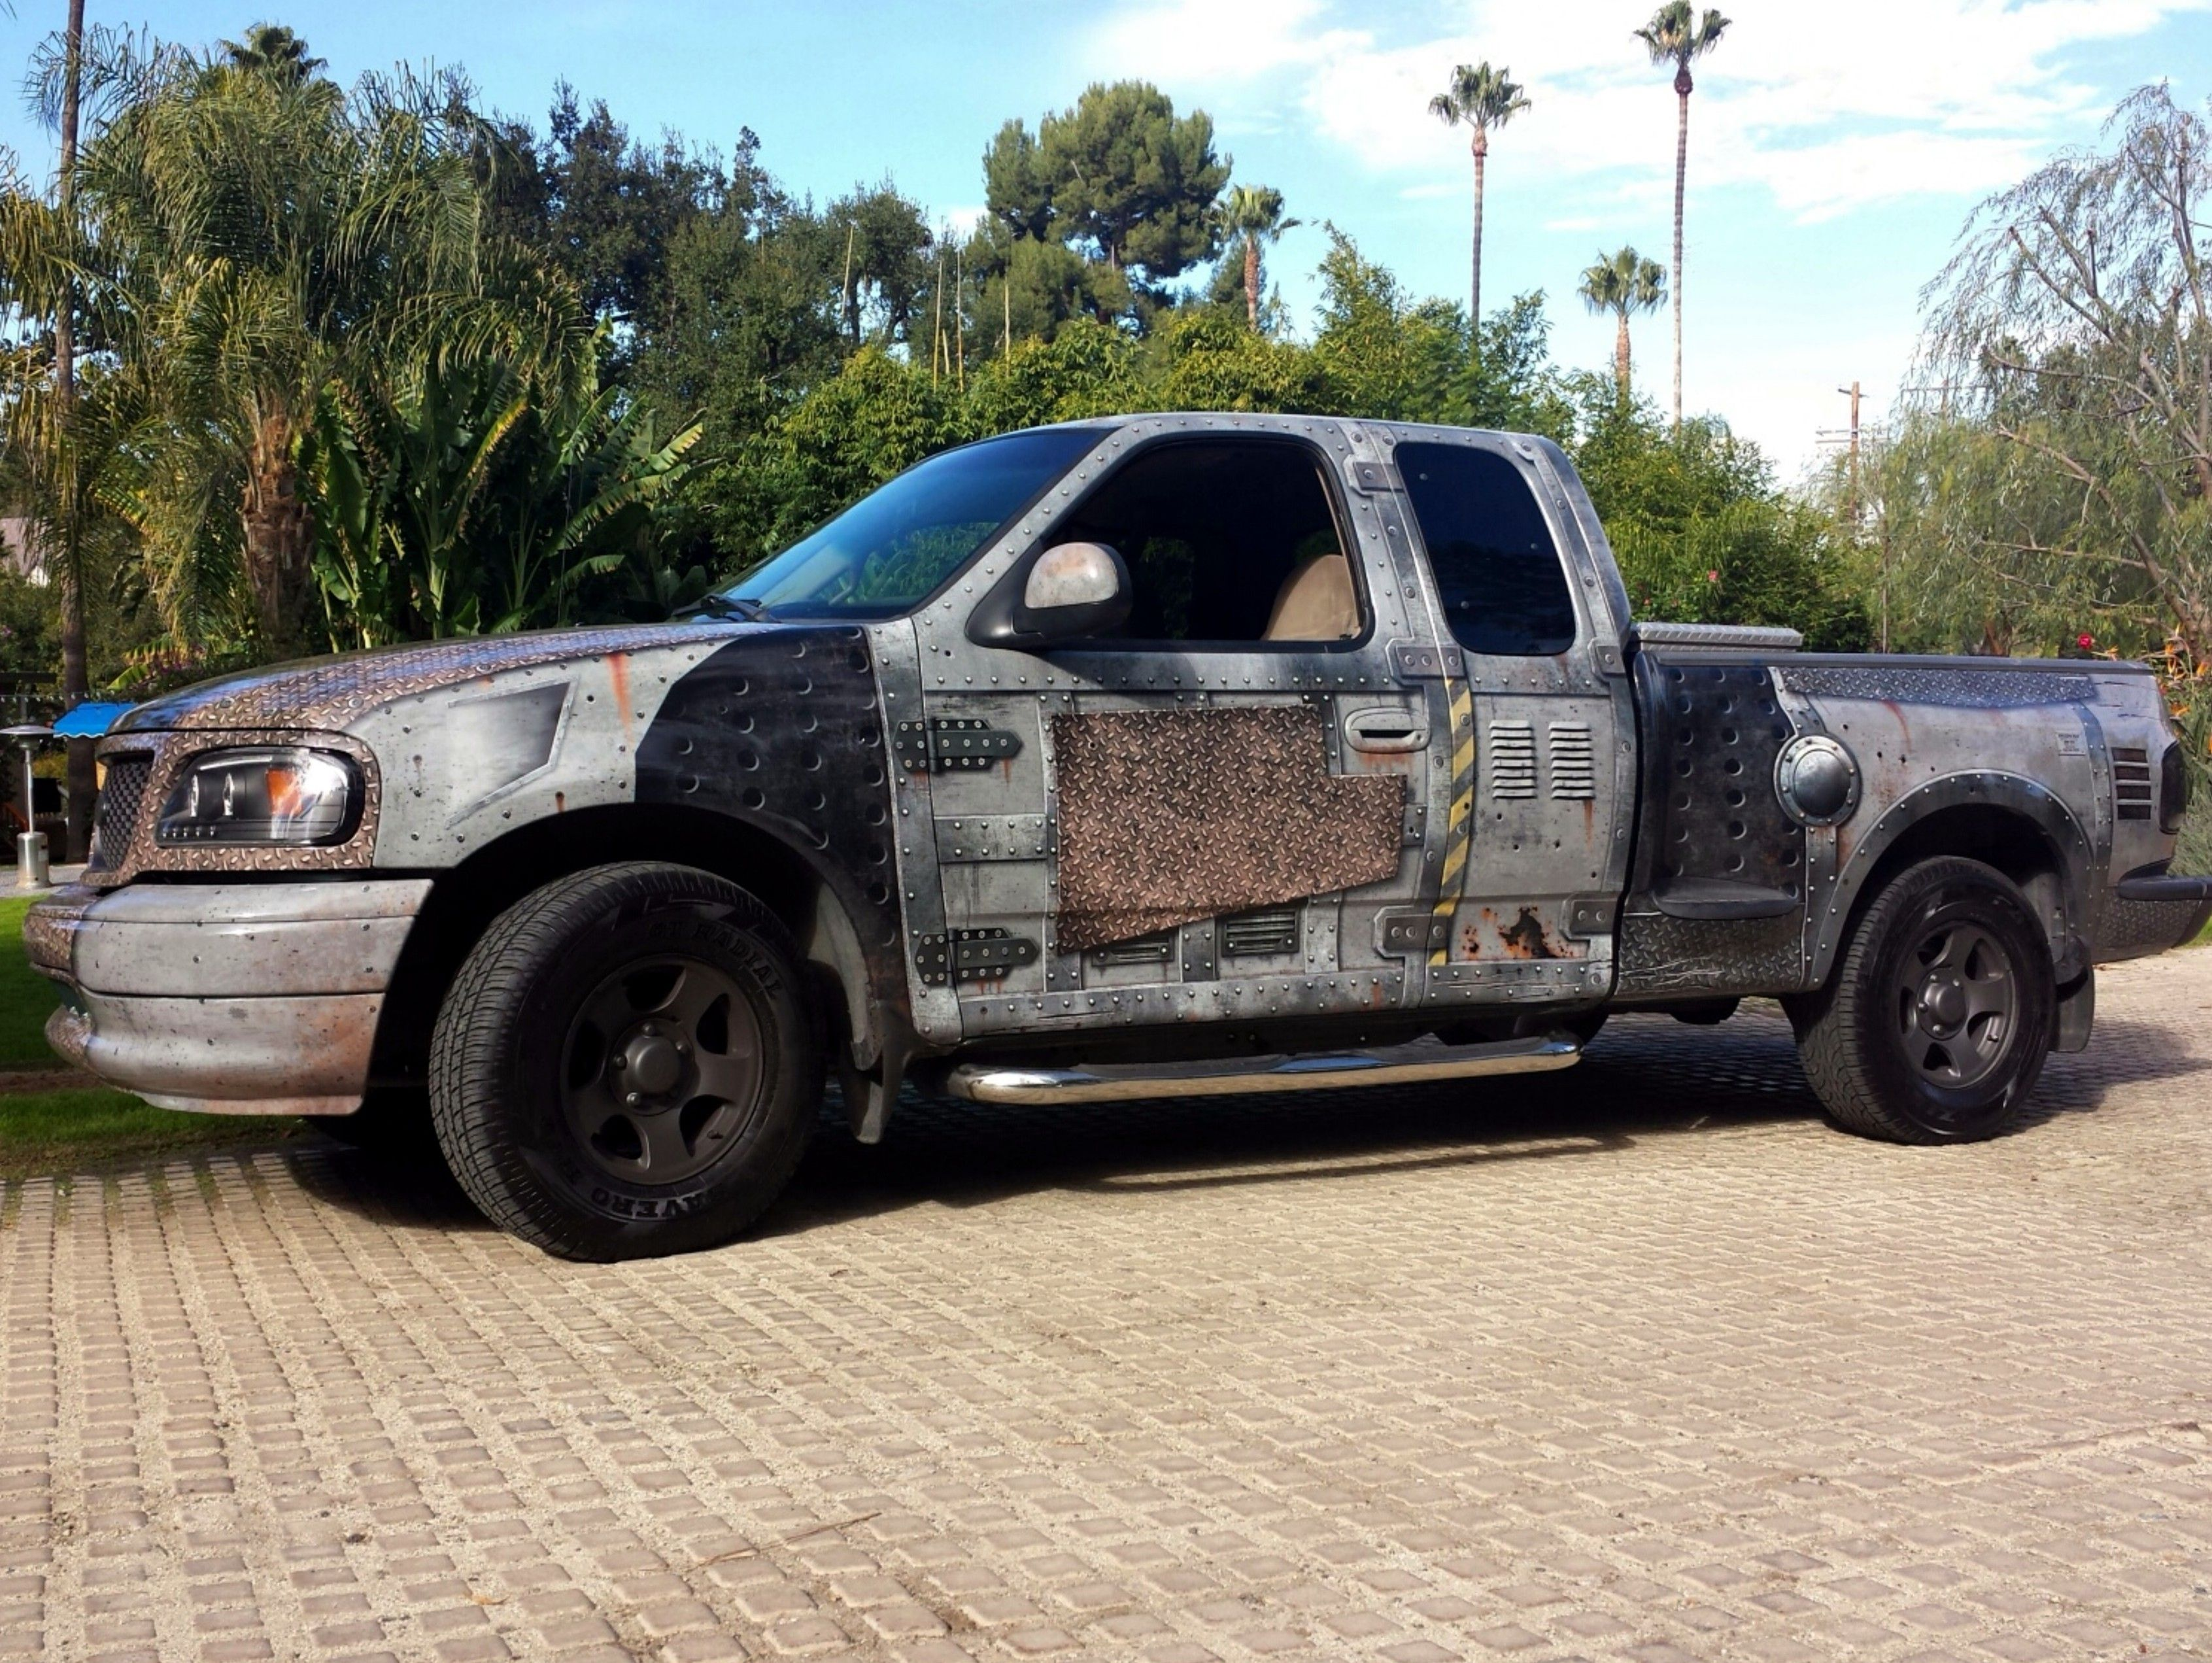 Apocalypse Wrap F150 Truck Wrap Designed And Installed By John King Los Angeles Autos